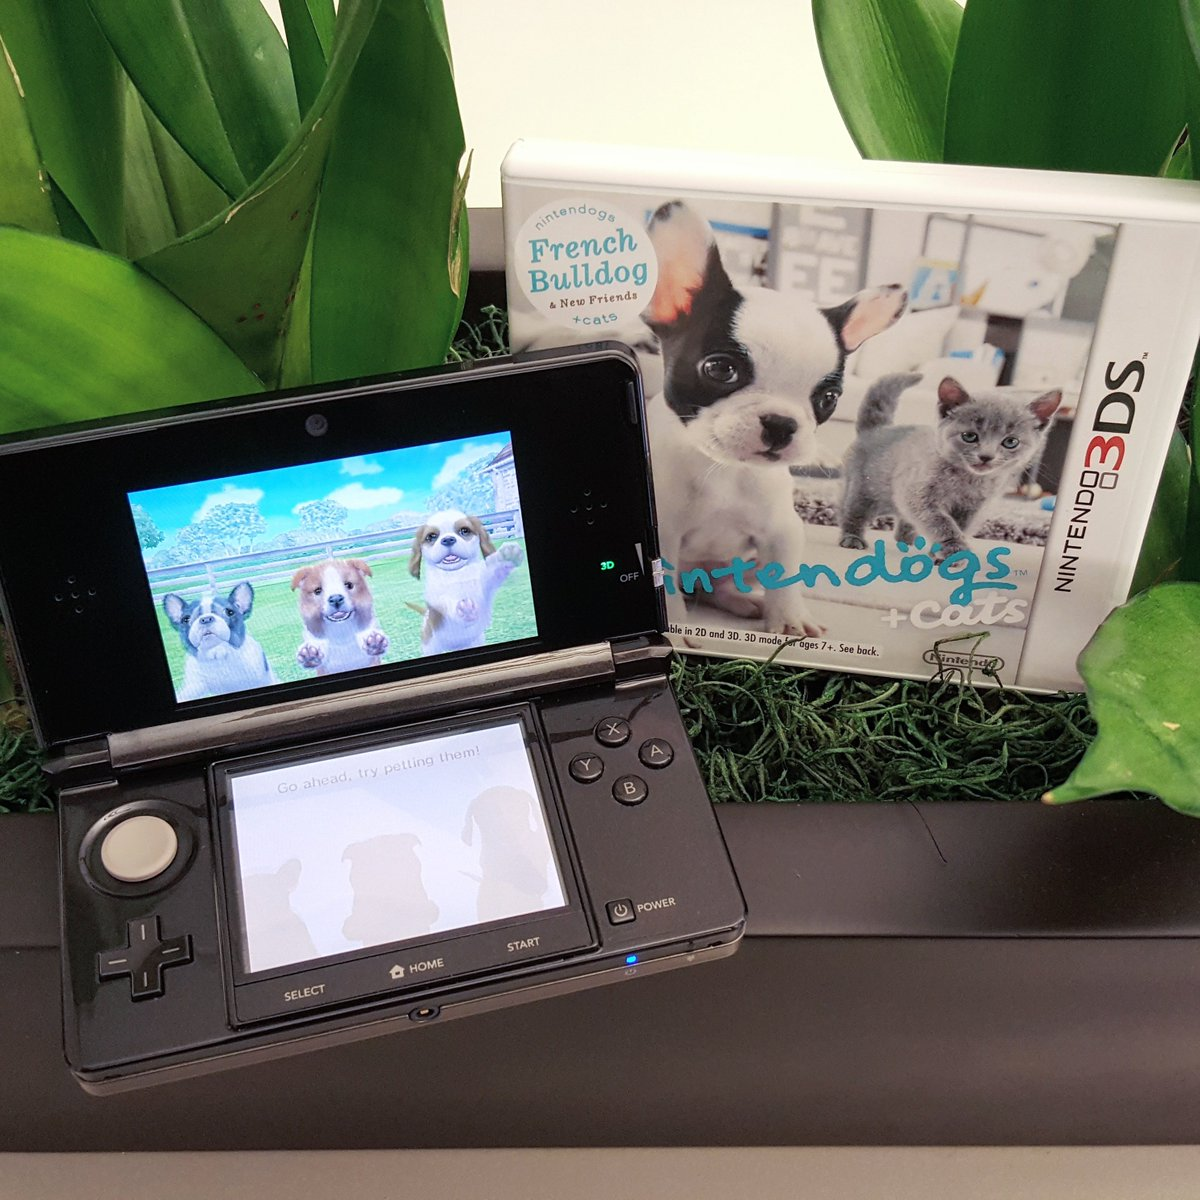 The Nintendo #3DS came out 6 years ago today! Can you name the other launch titles that released with it?